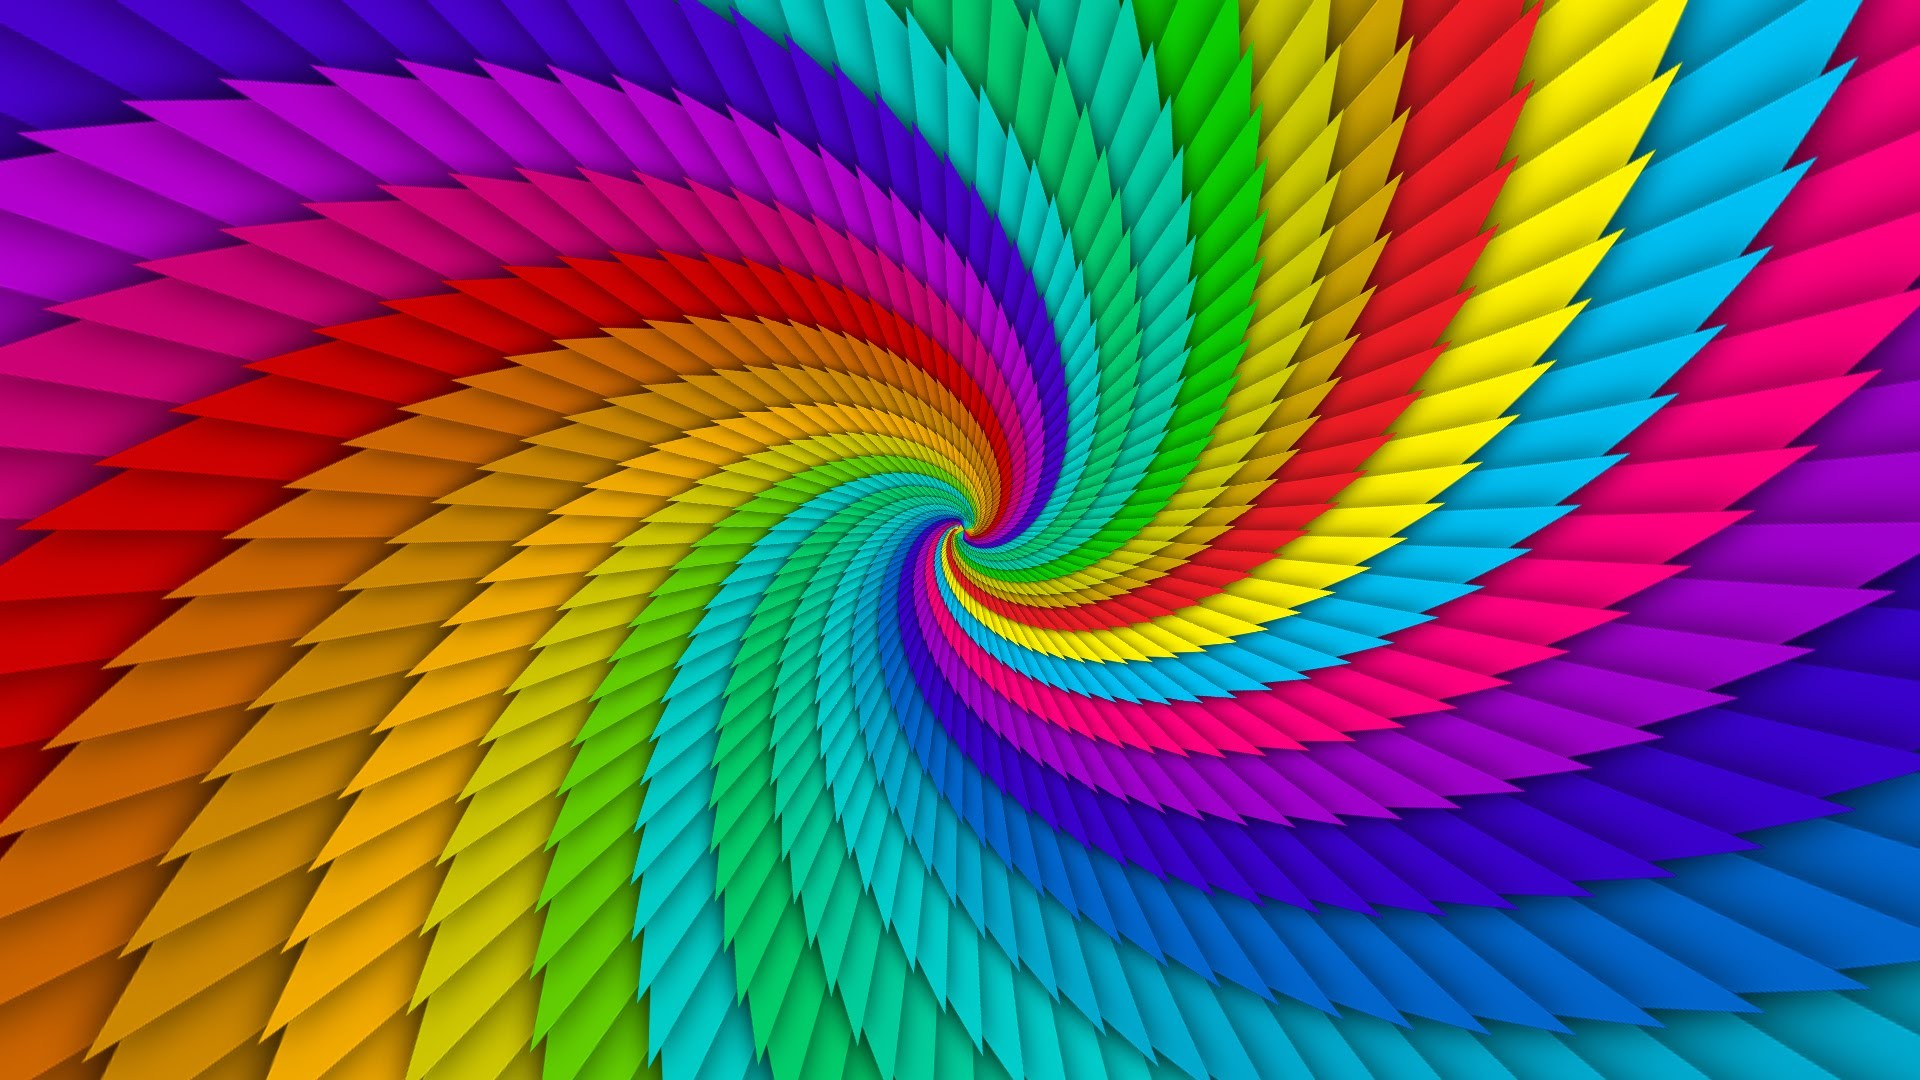 Pictures Of Colorful Backgrounds 55 Images